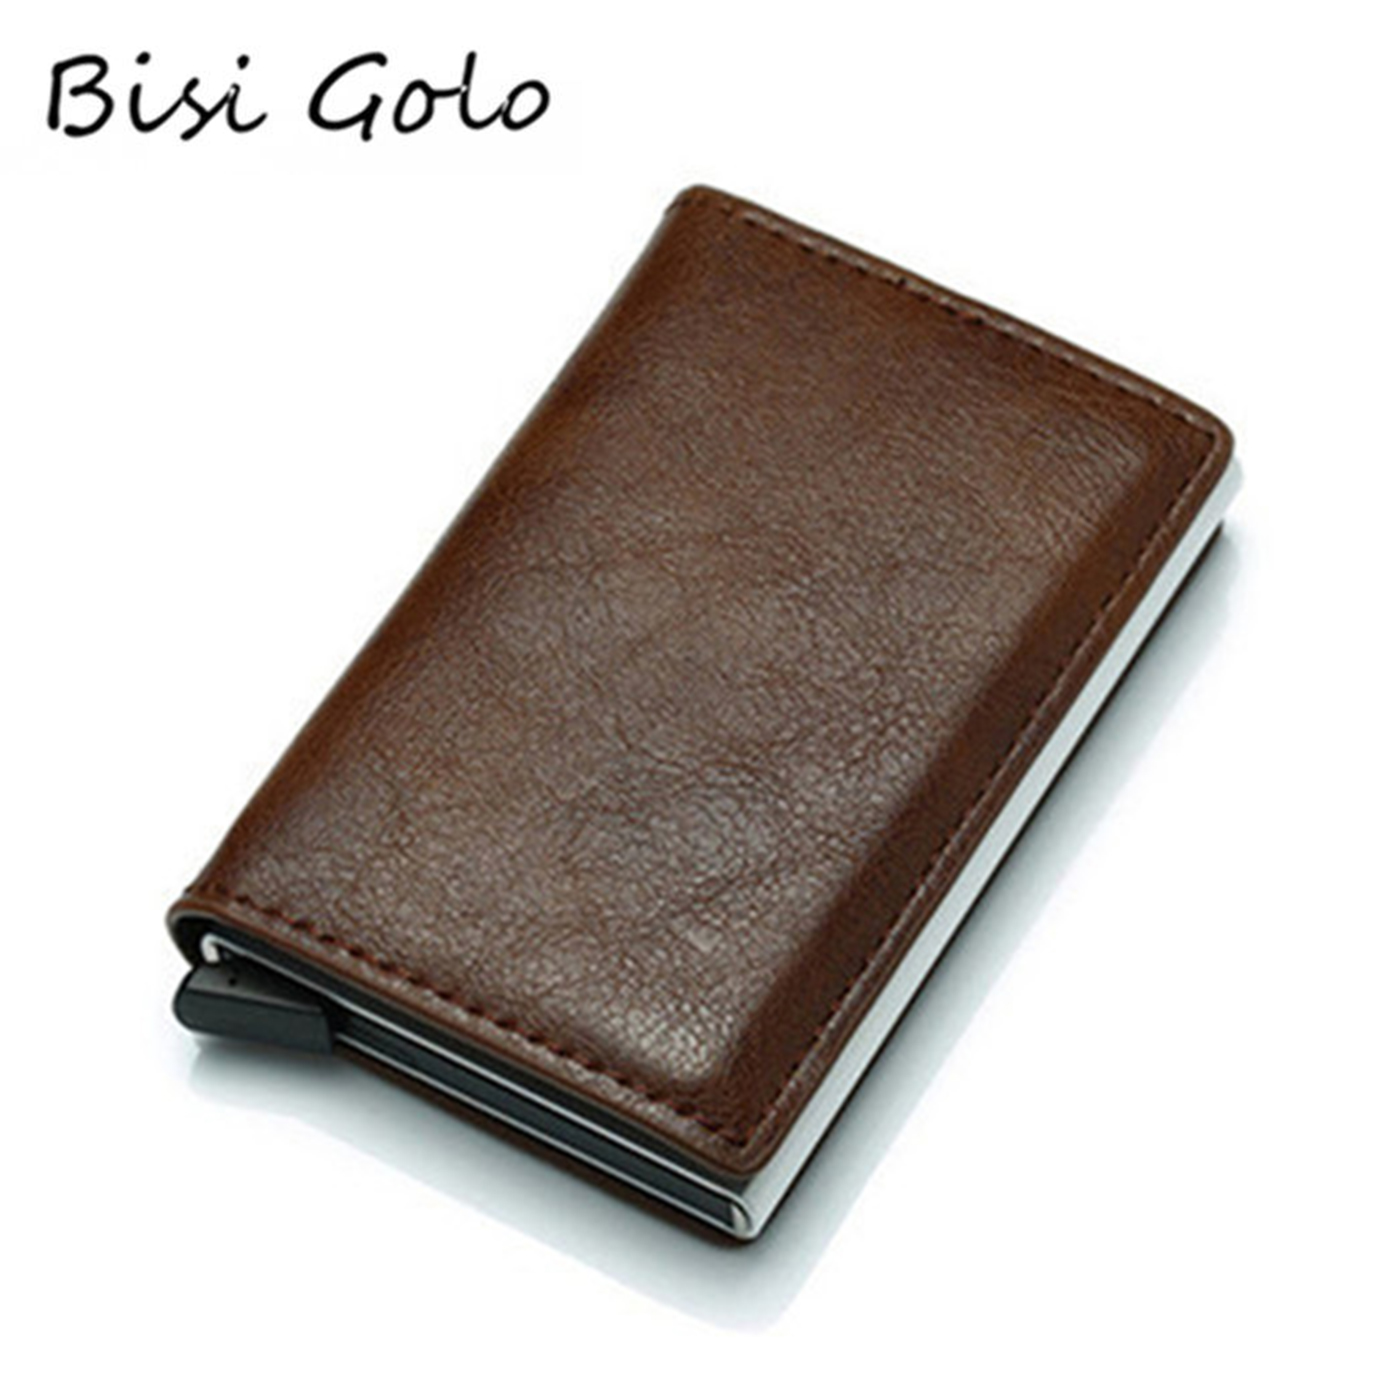 Card Wallet Bisi Goro Crazy-Horse High-Quality Aluminum Unisex PU Hasp Metal